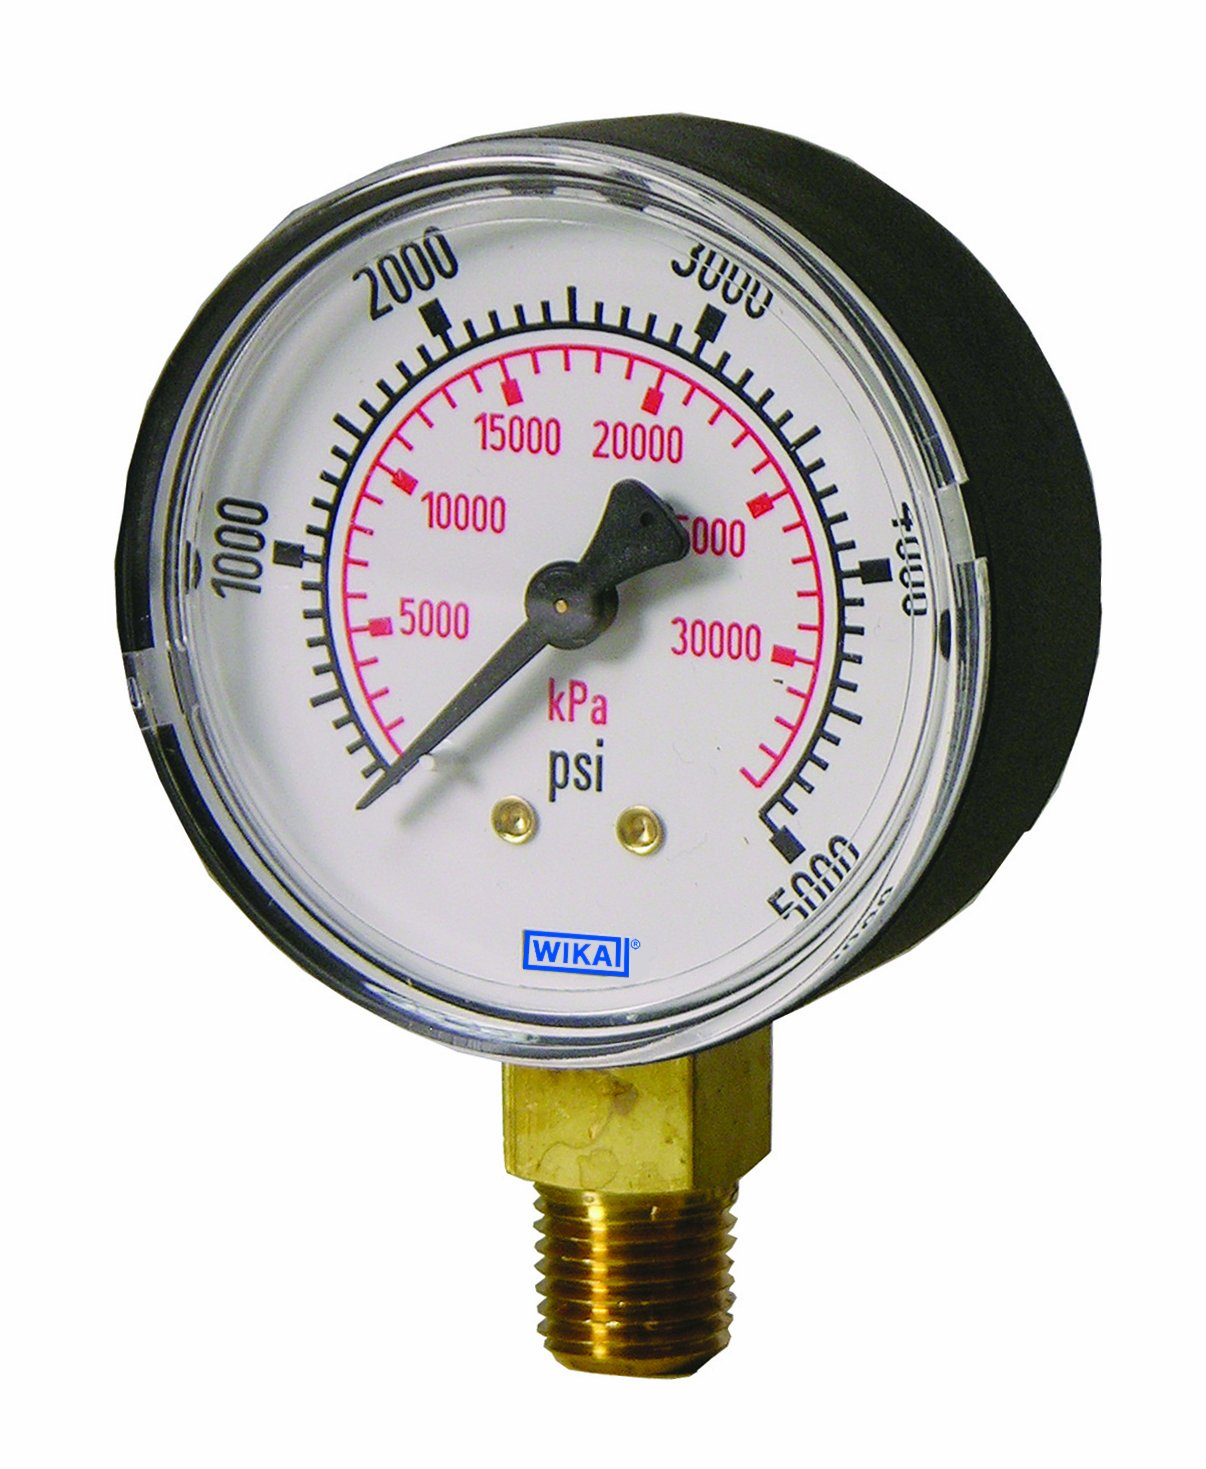 WIKA 9768050 Commercial Pressure Gauge Dry-Filled Copper Alloy Wetted Parts +//-3//2//3/% Accuracy Range 1//4 Male NPT Connection kPa 0-30Hg-0-200 psi 1//4 Male NPT Connection Range Bottom Mount 4 Dial 0-30Hg-0-200 psi 4 Dial kPa